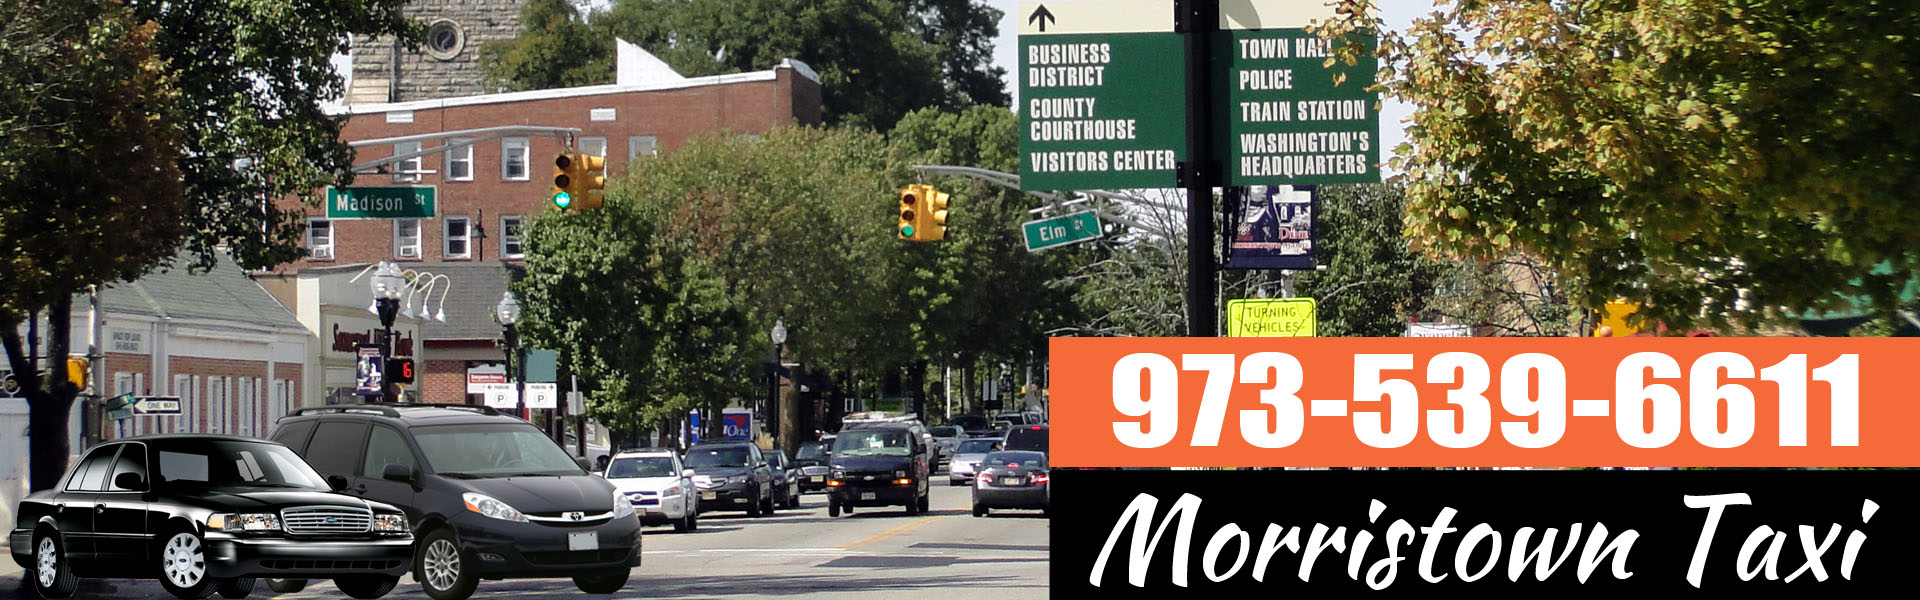 Morristown Taxi Service NJ